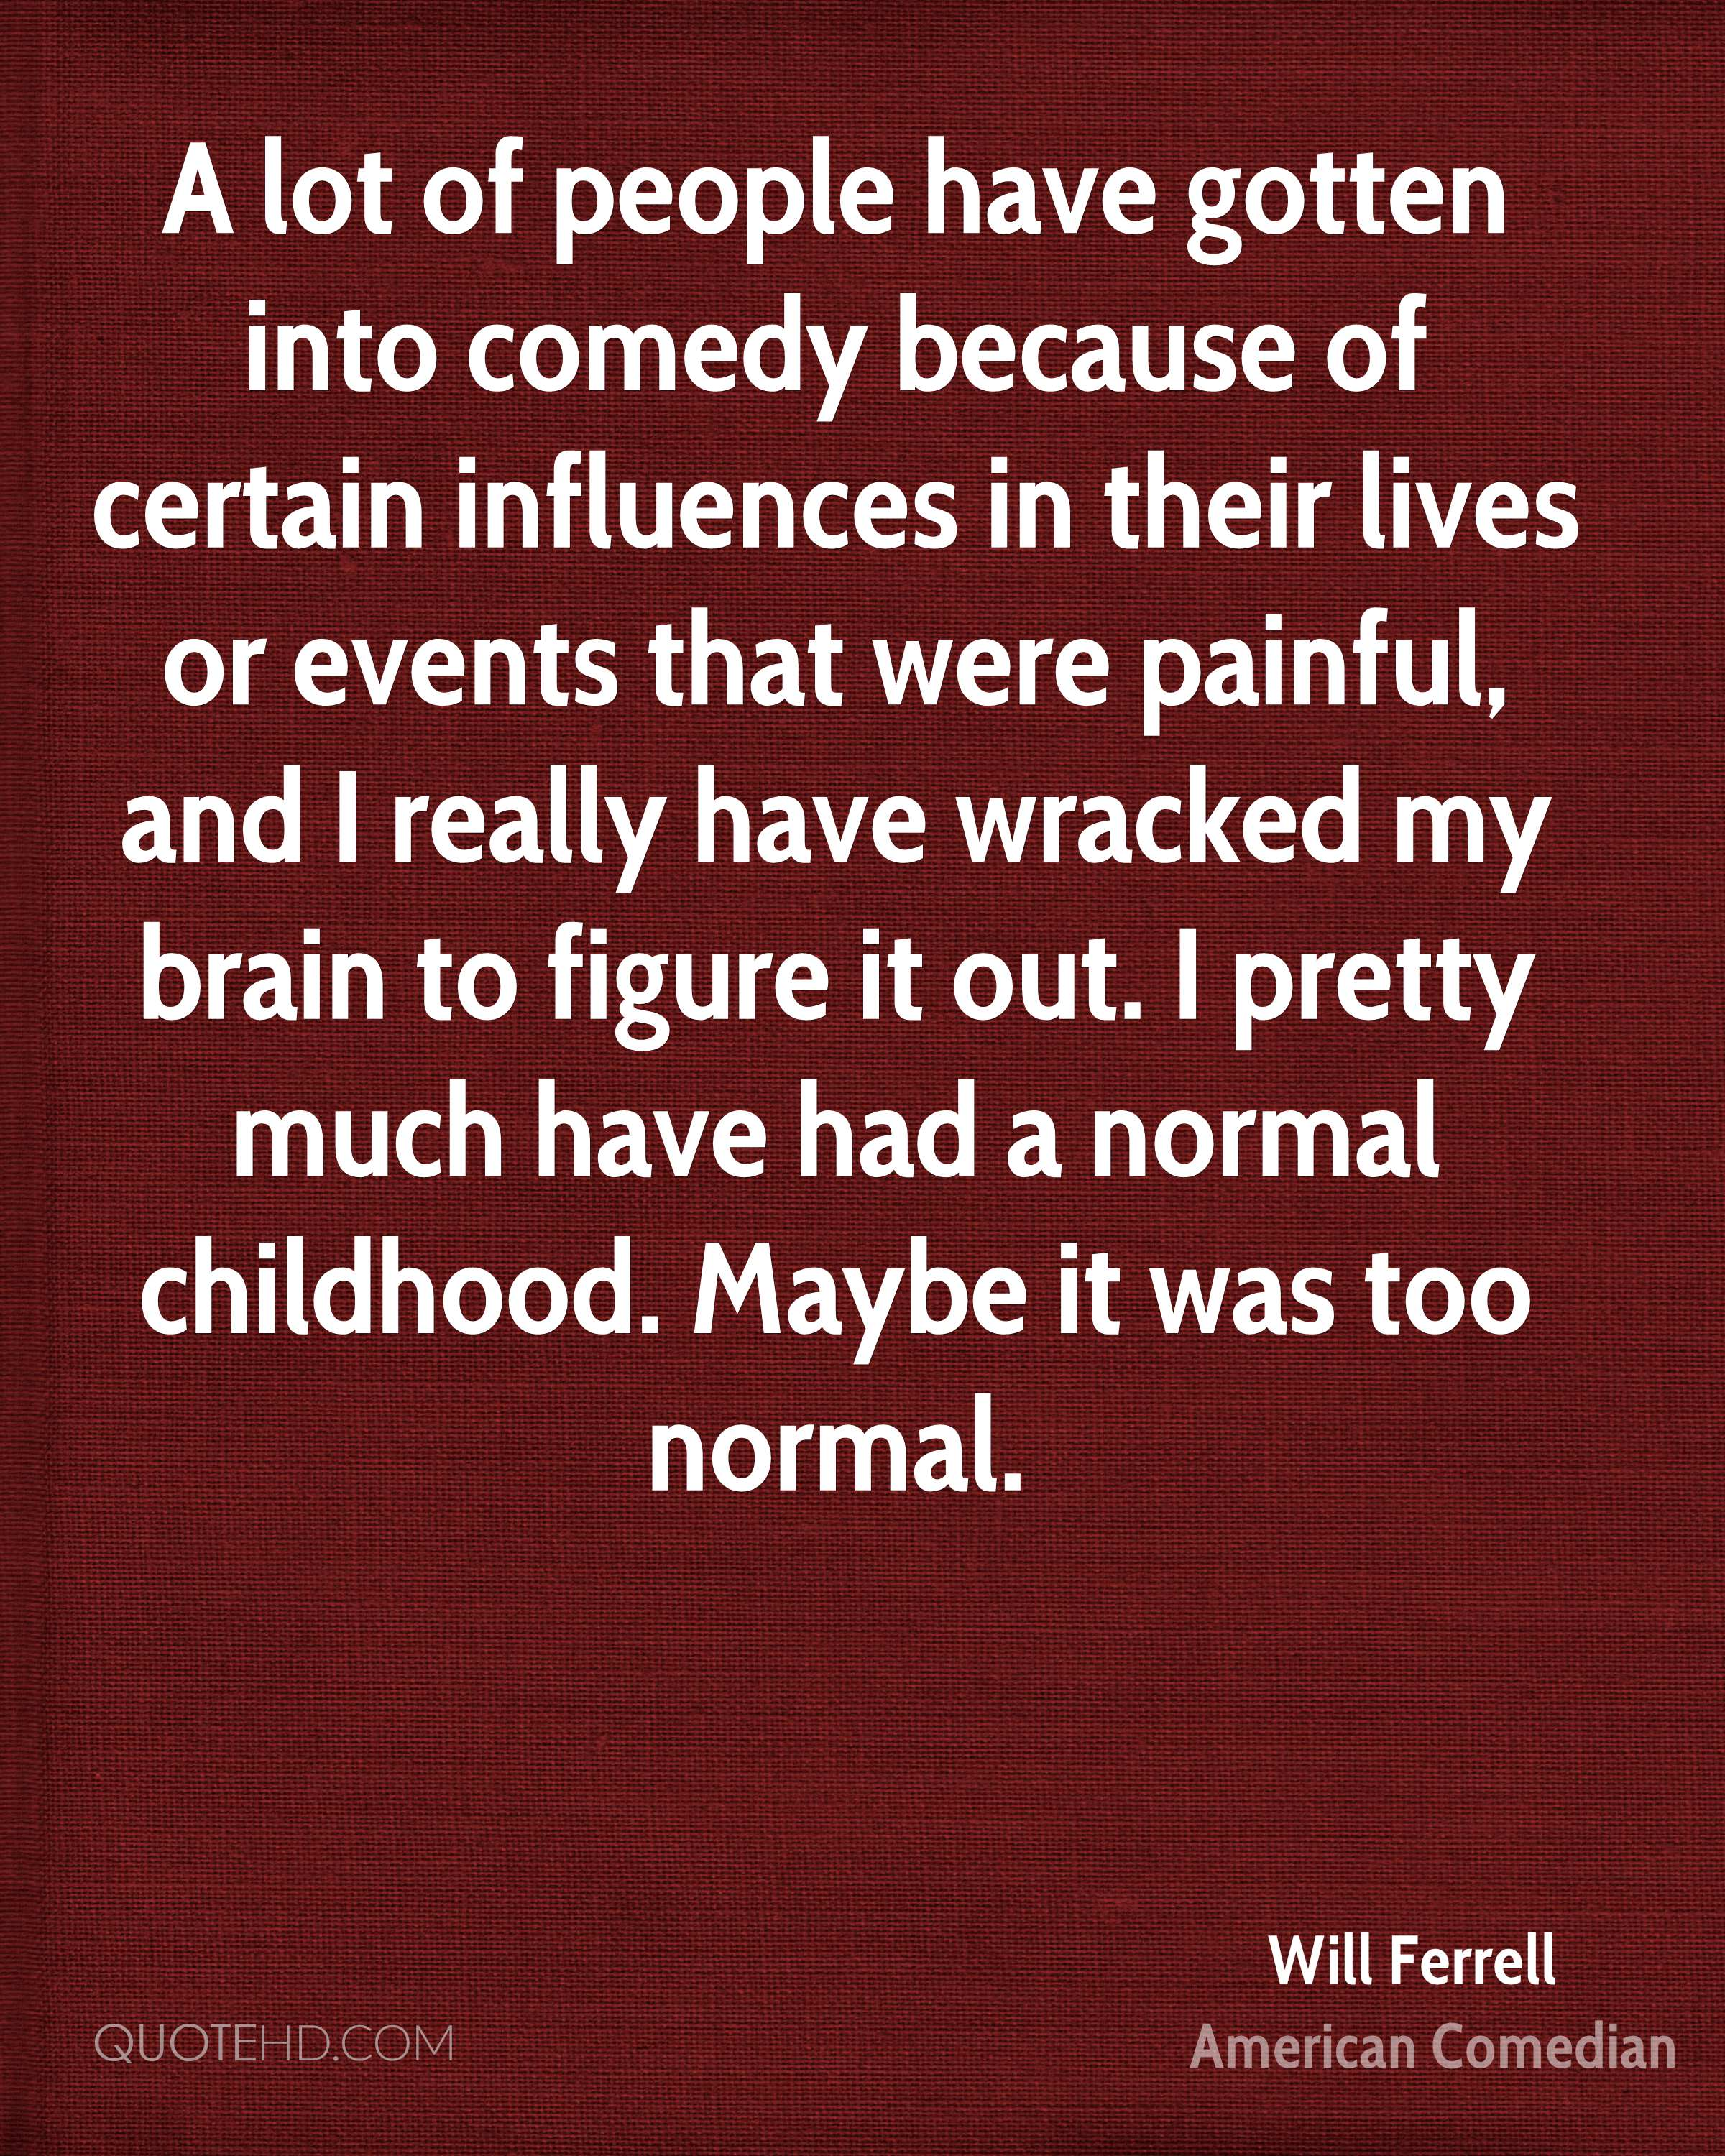 A lot of people have gotten into comedy because of certain influences in their lives or events that were painful, and I really have wracked my brain to figure it out. I pretty much have had a normal childhood. Maybe it was too normal.